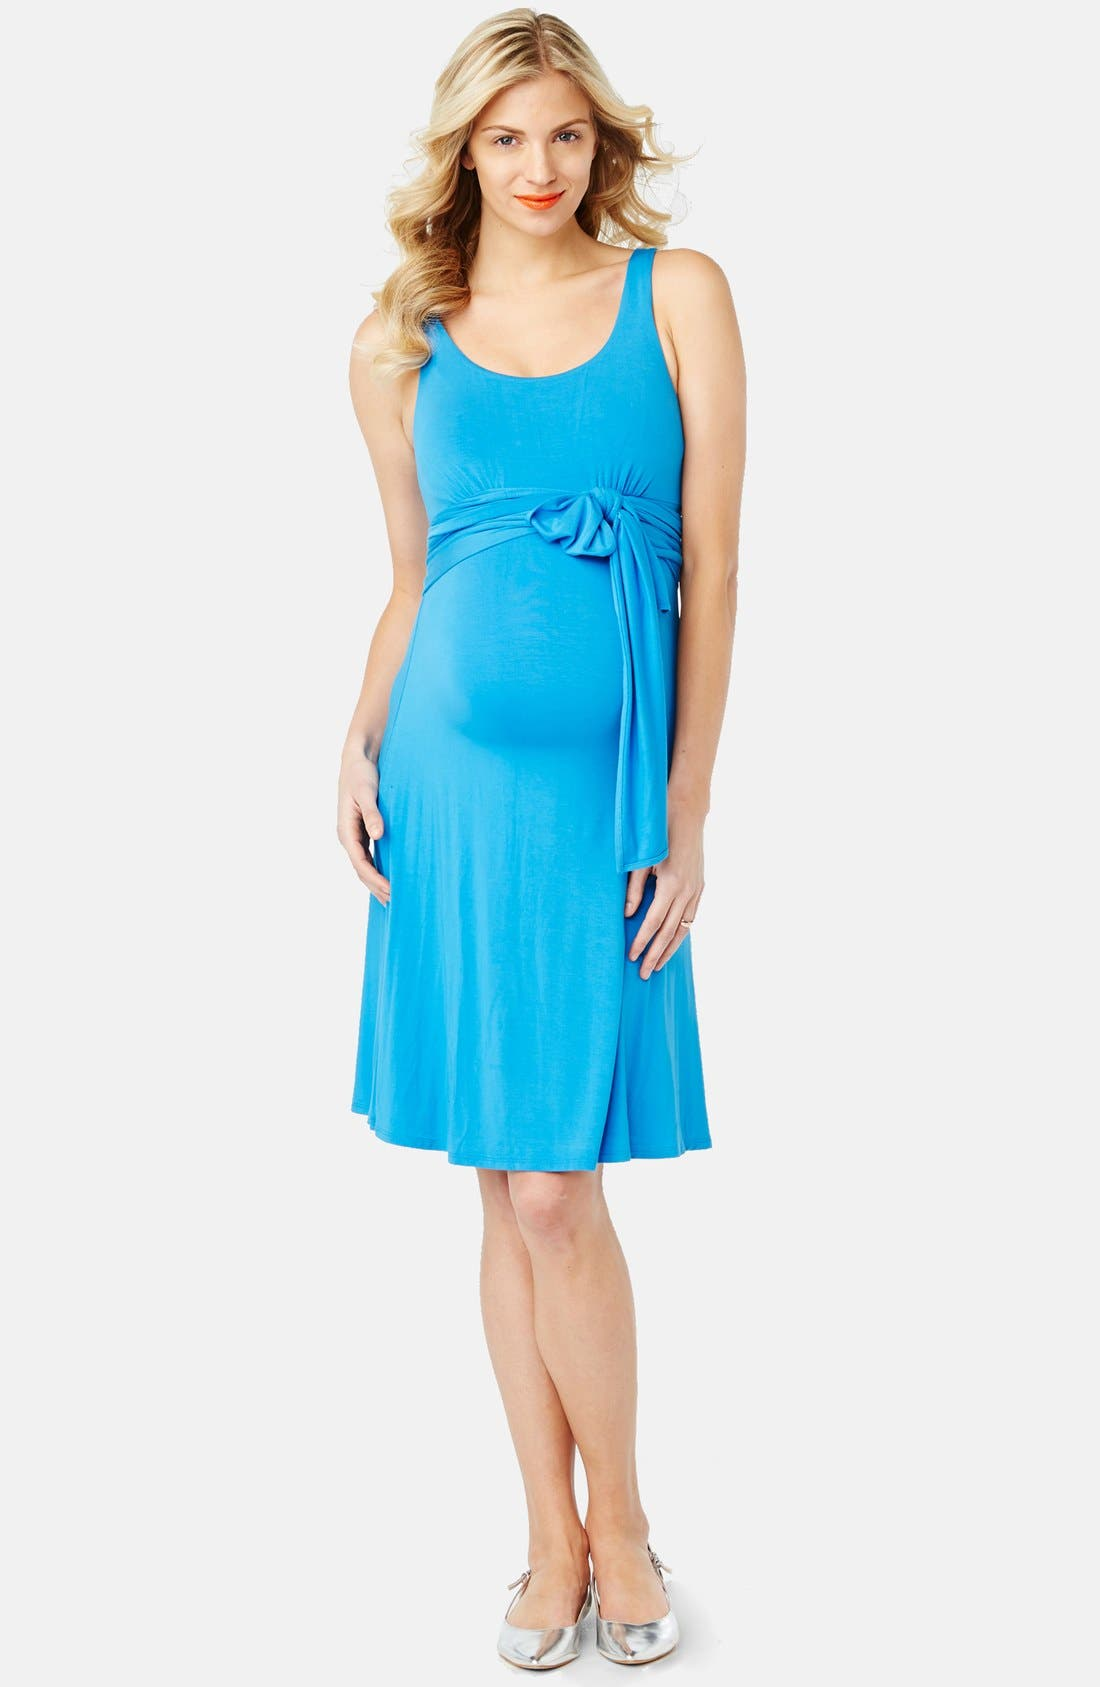 Rosie Pope 'Best' Maternity Dress